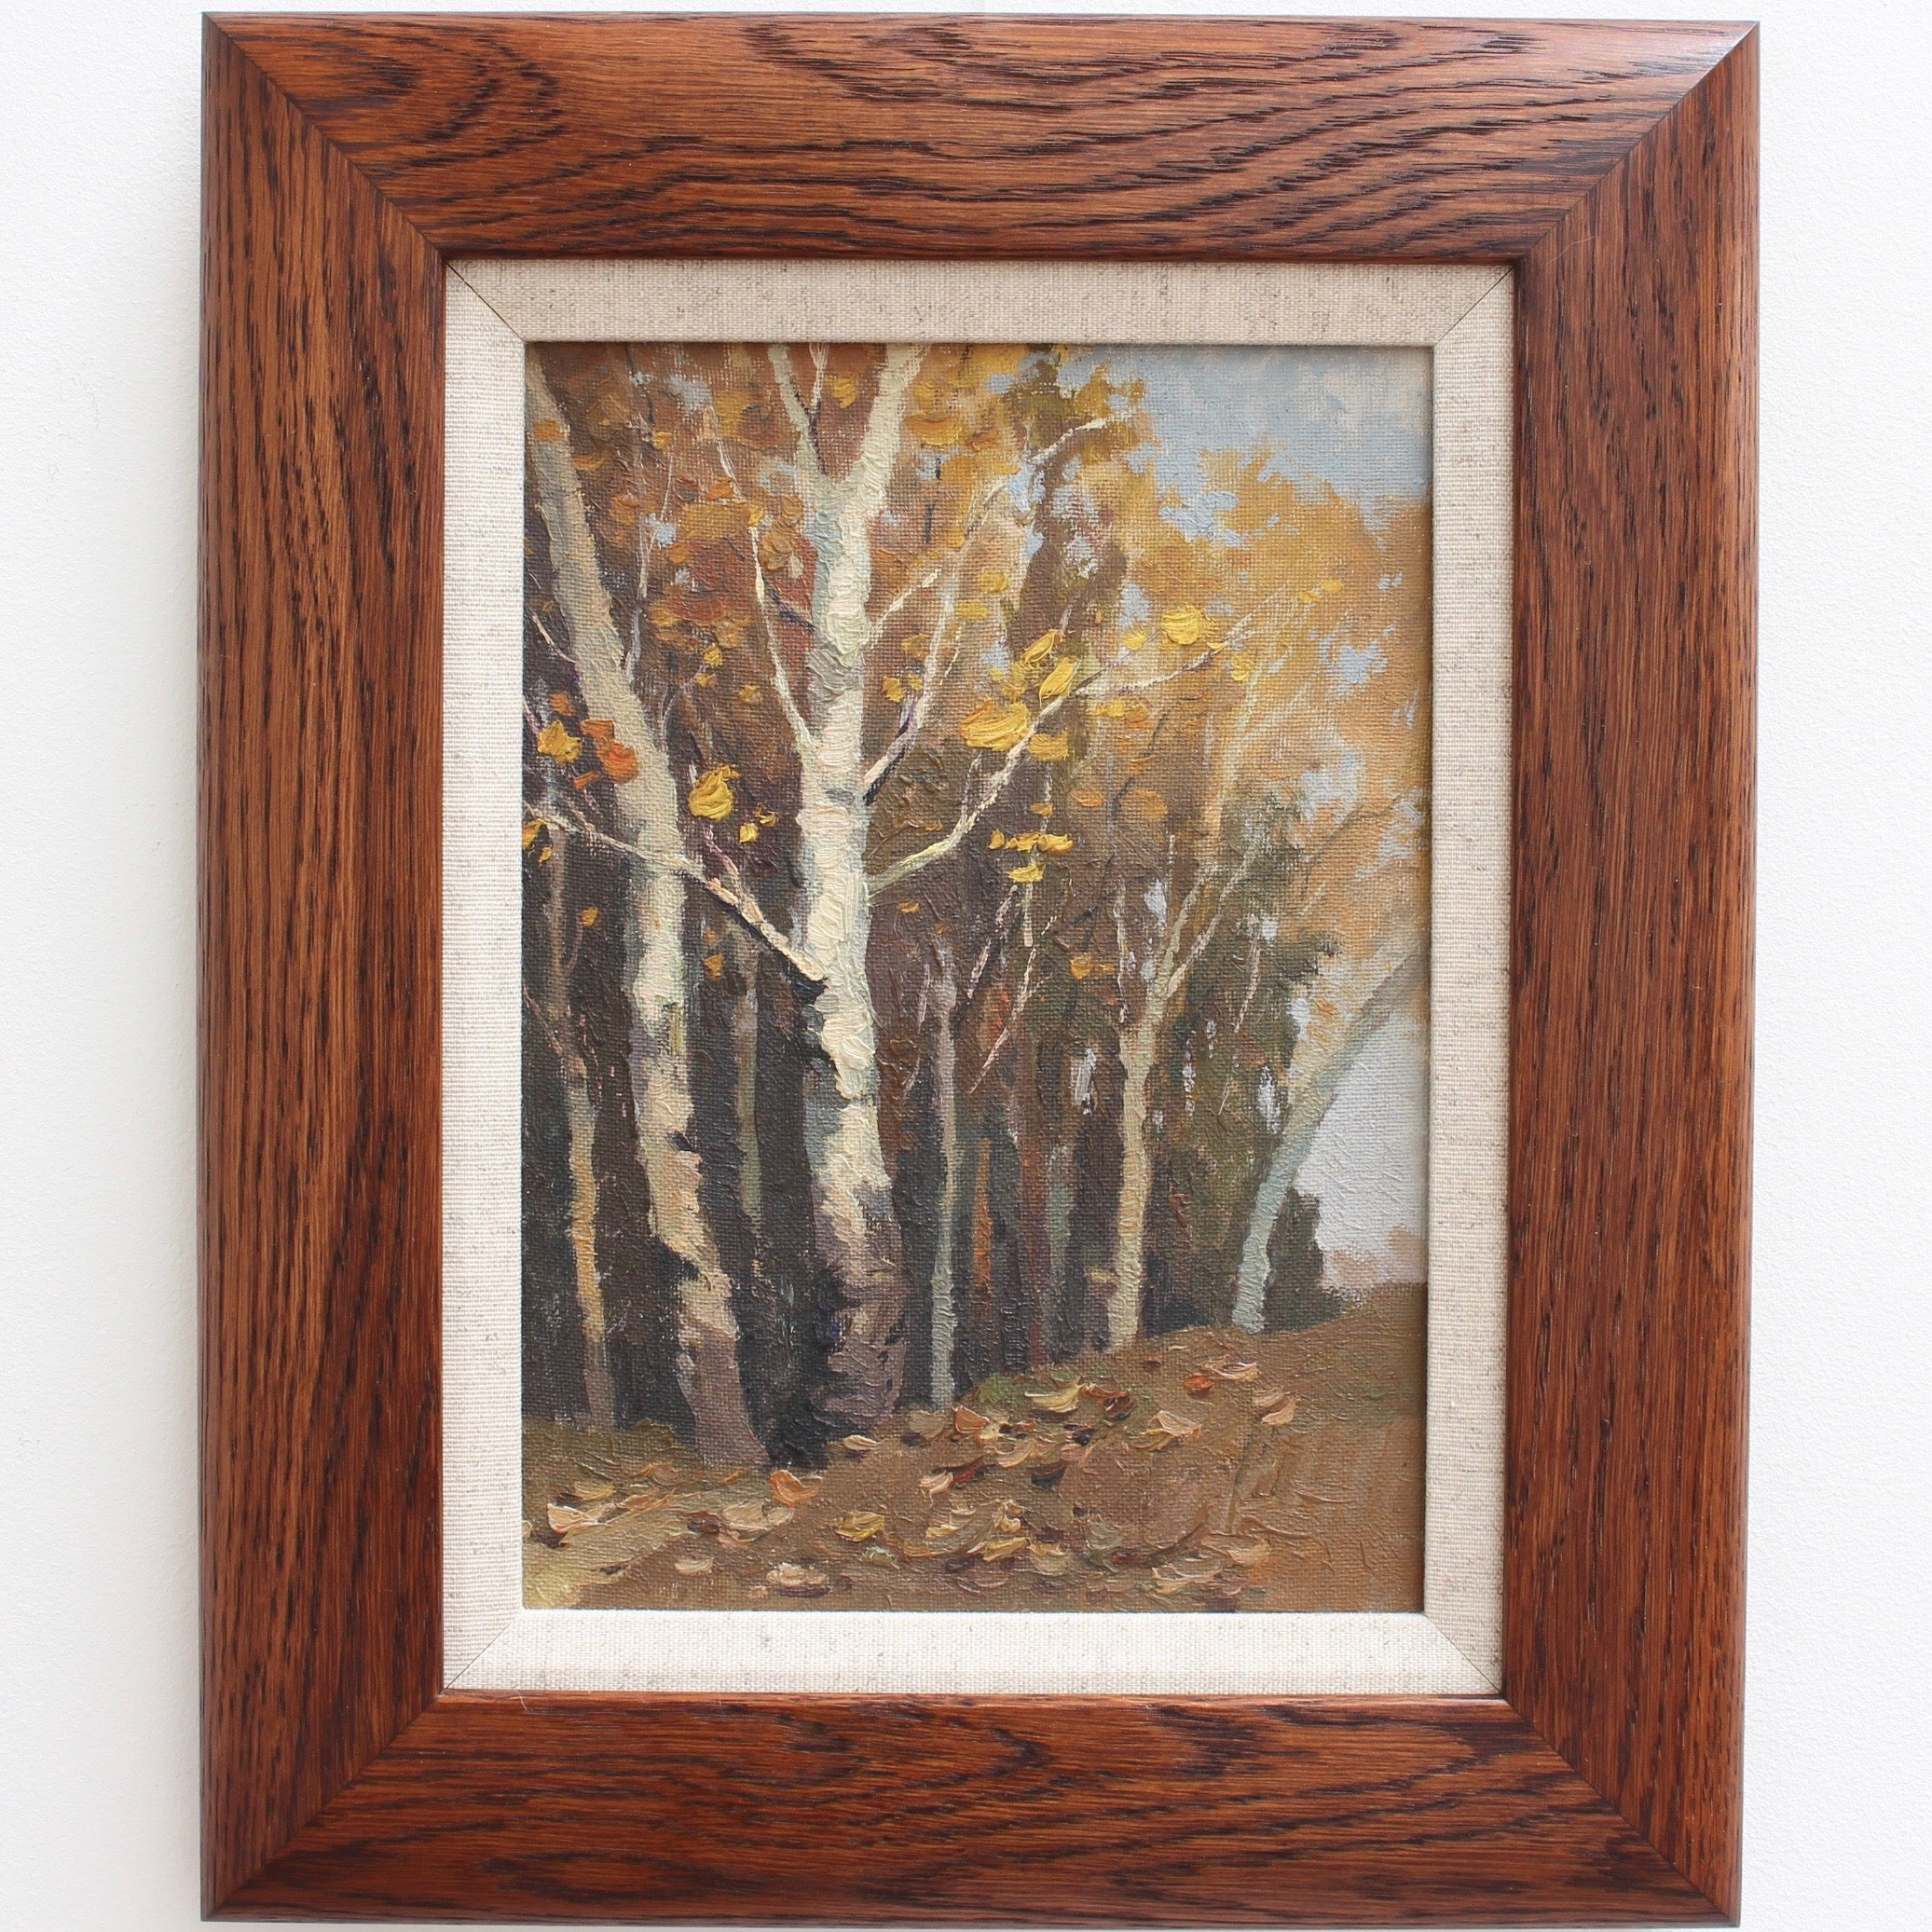 'Forest's Edge in Autumn' (circa 1960s)